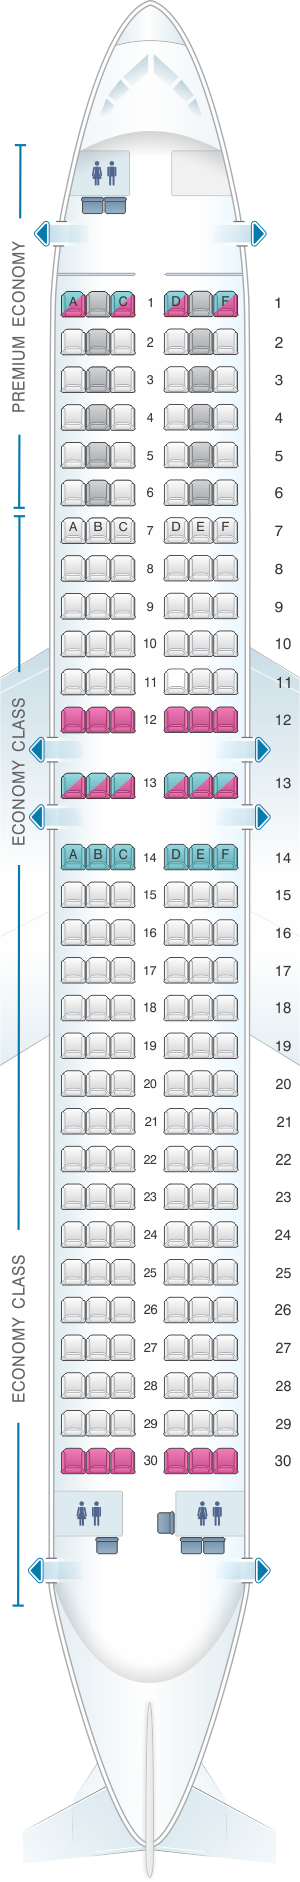 Seat map for Condor Airbus A320 200